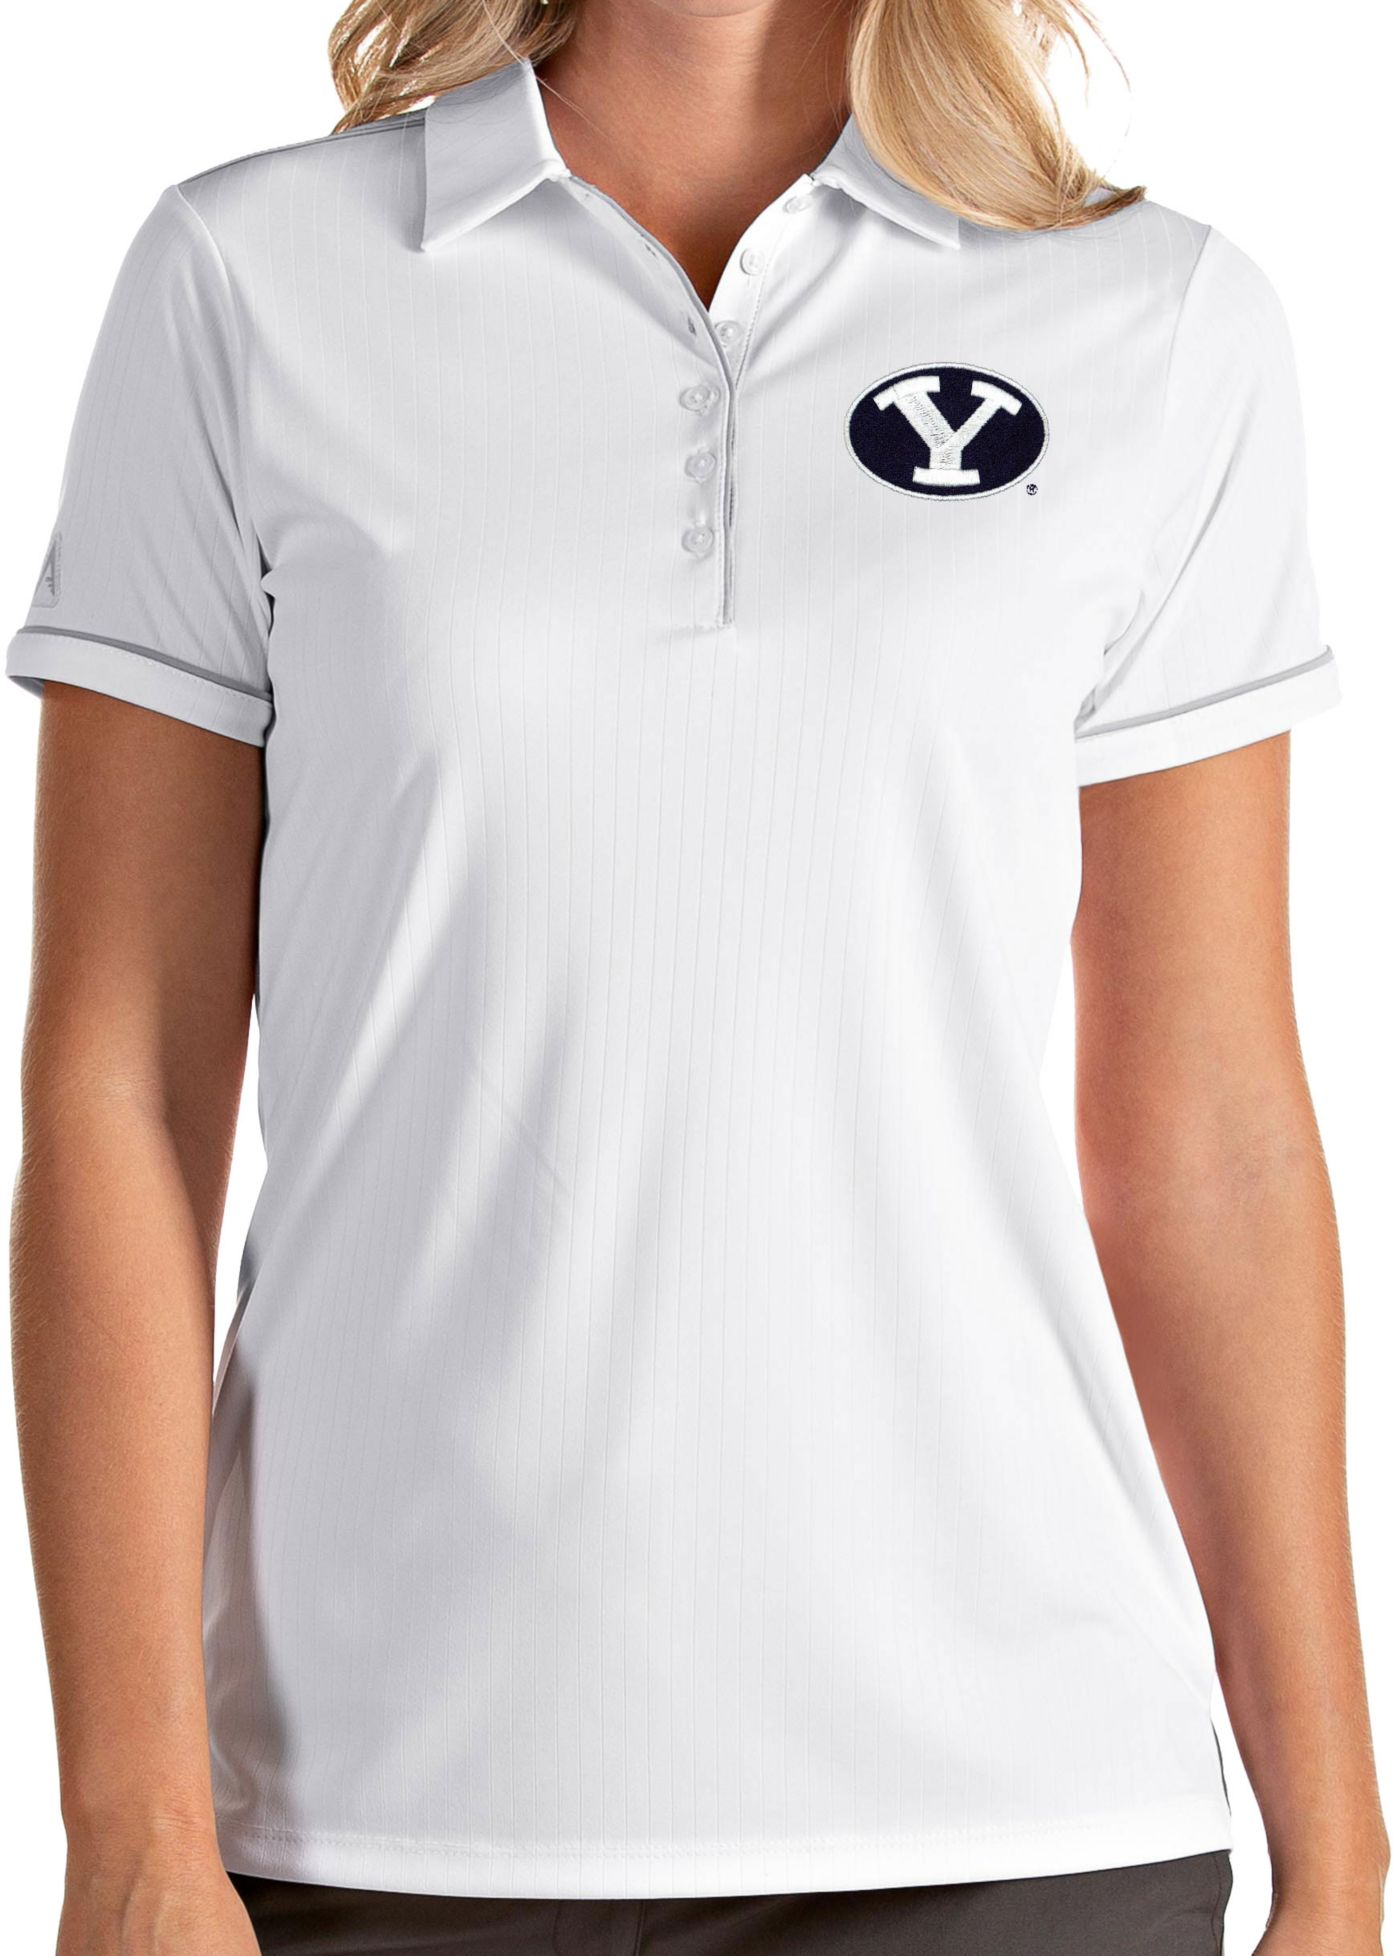 Antigua Women's BYU Cougars Salute Performance White Polo